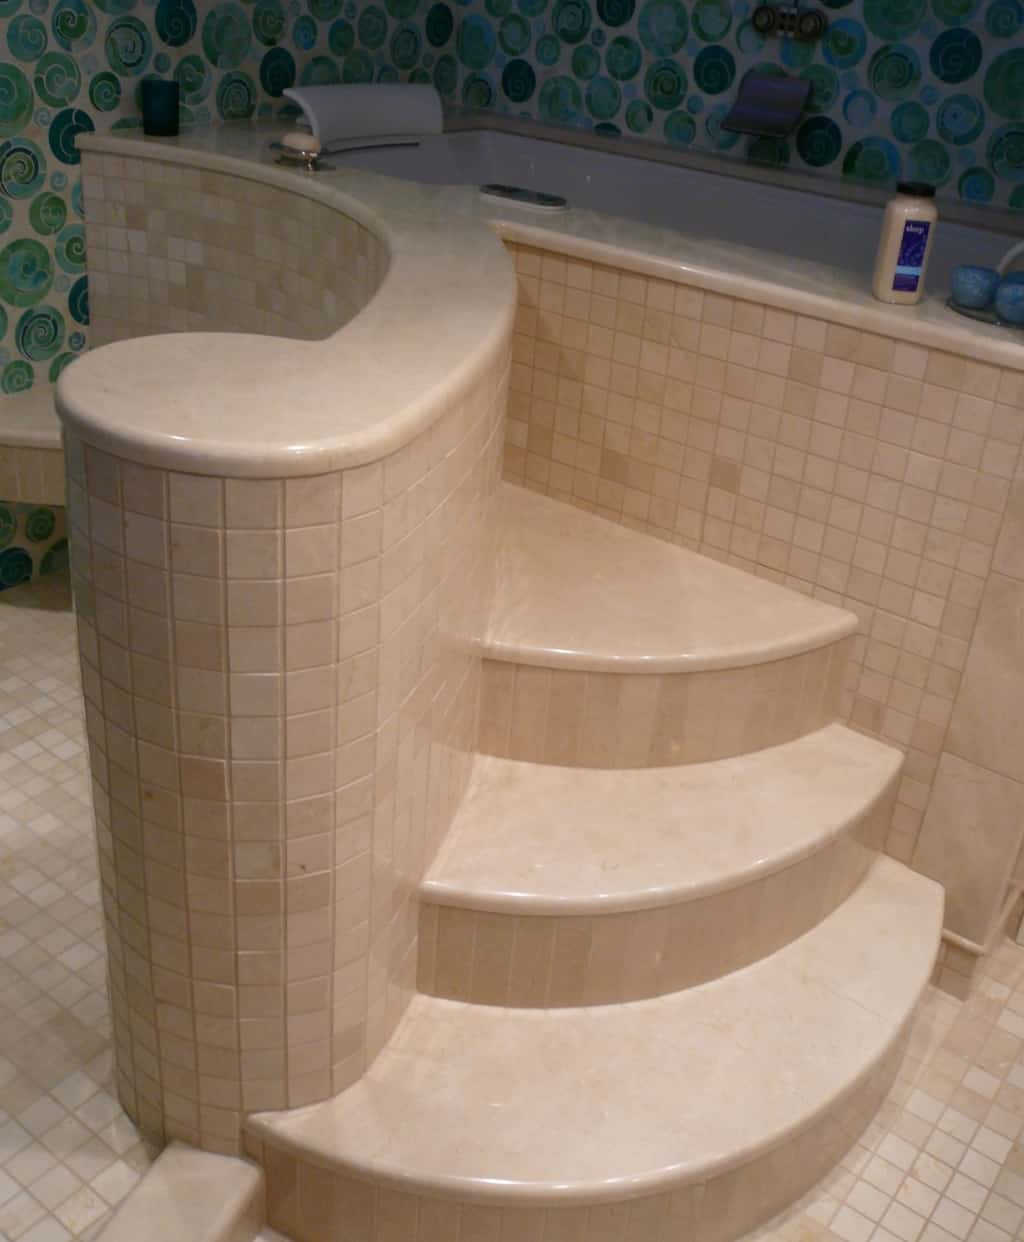 cypress homes salem oregon - Custom Craft Bathroom design.